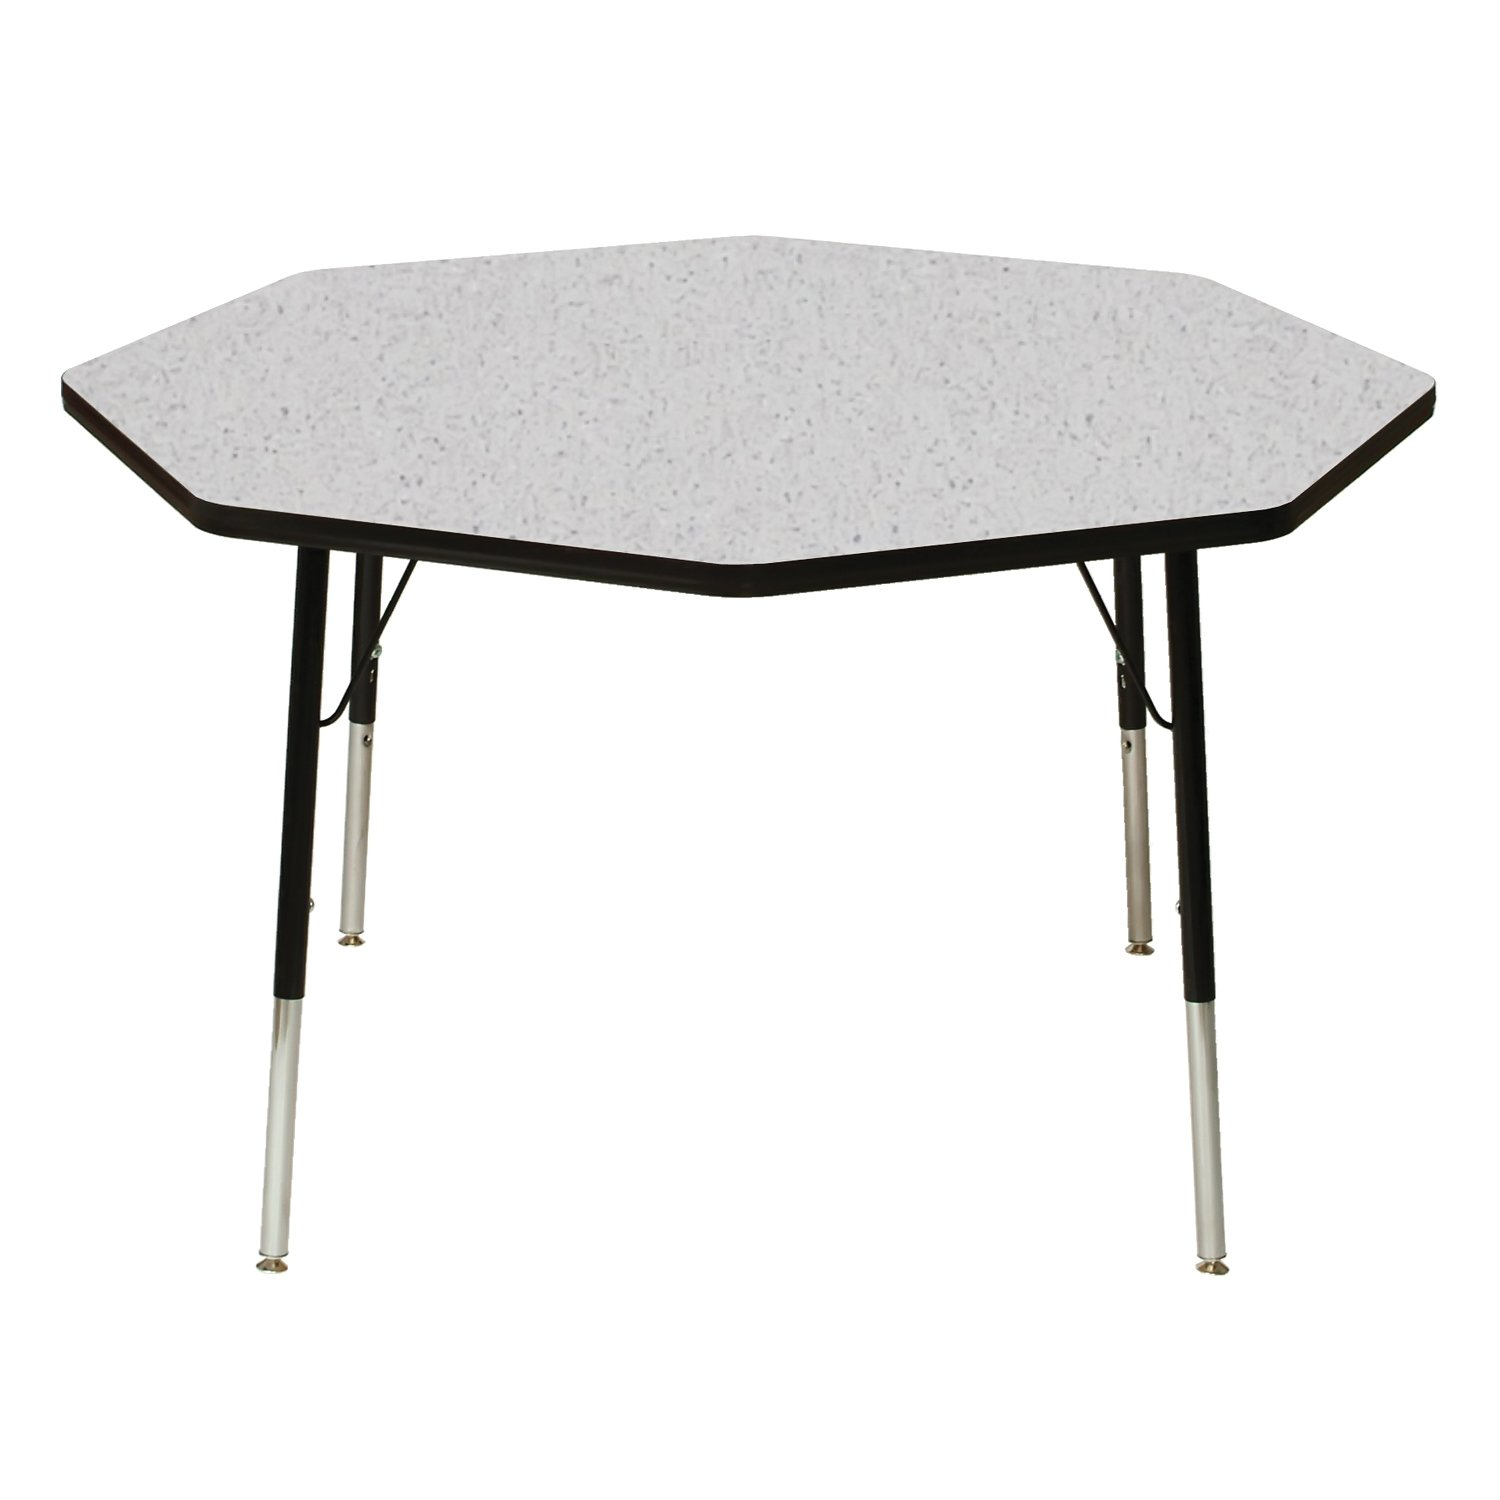 60'' x 30'' Trapezoidal Classroom Table Table Size: Toddler 16''-24'' Ball Glide, Top Color: Gray Nebula, Side Finish: Black